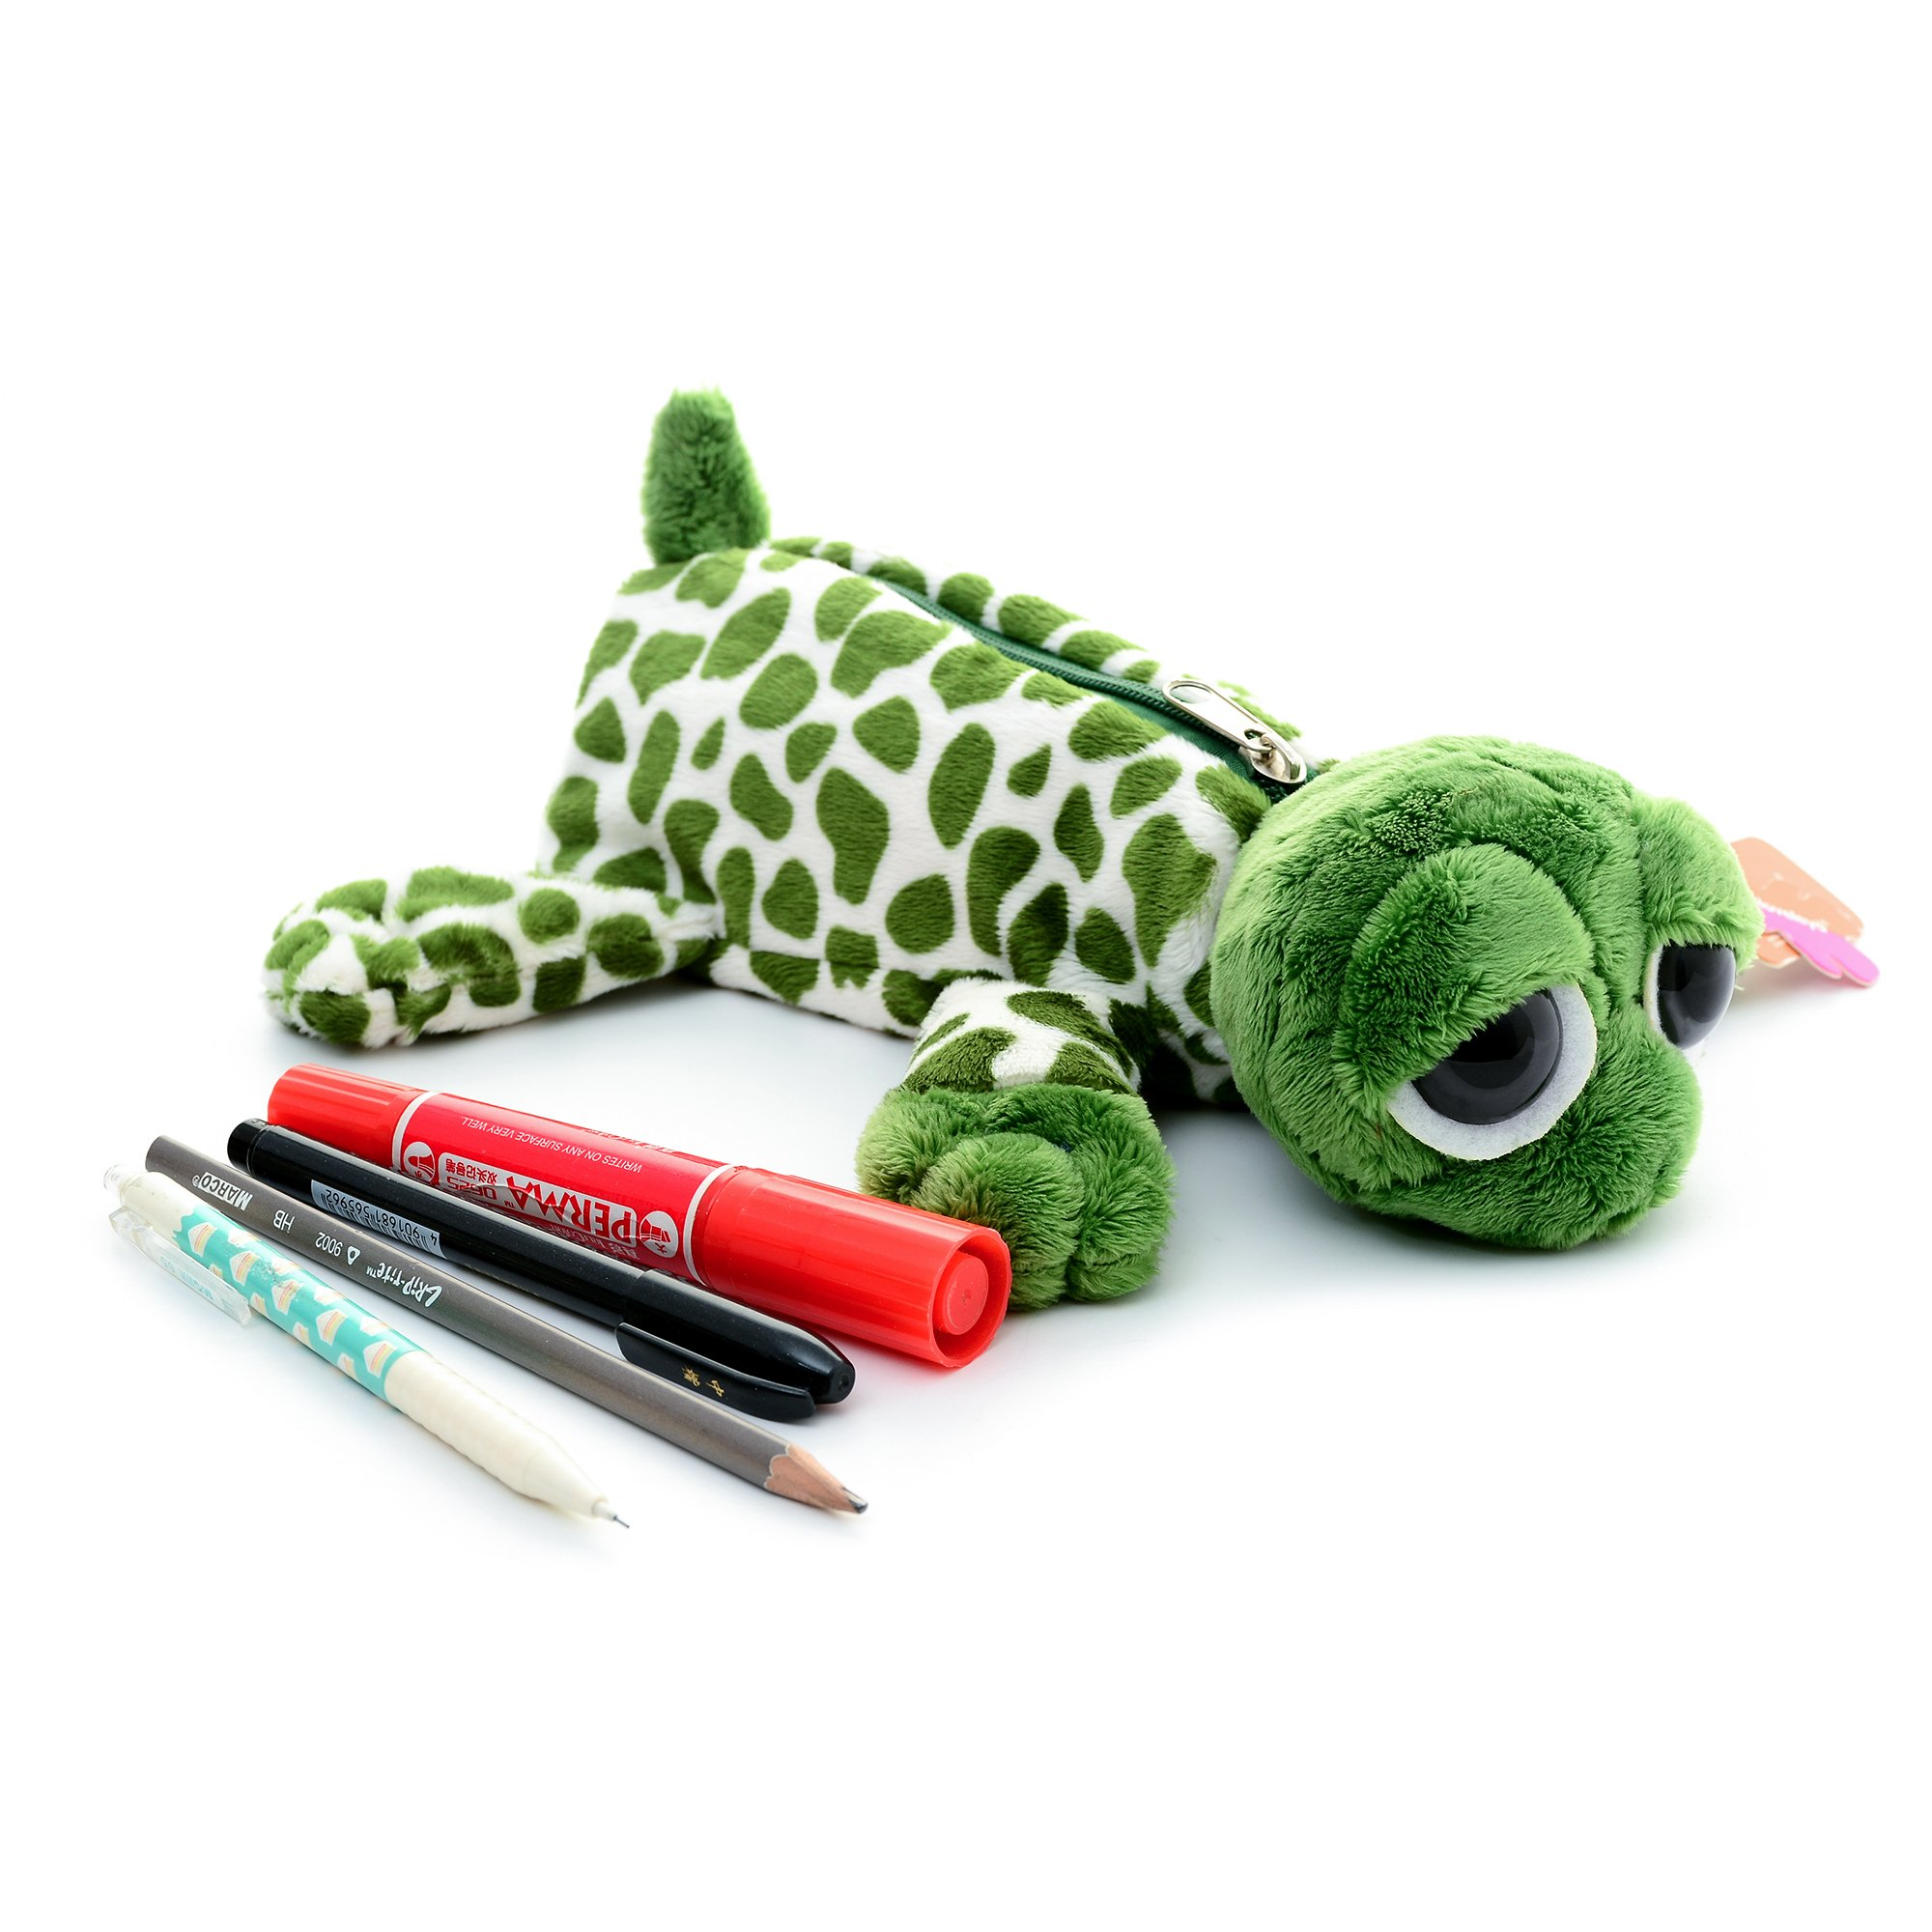 Cartoon Animal Plush School Pencil Bag Pen Case Comestic Makeup Pouch 11'' (turtle) by Gloveleya (Image #1)